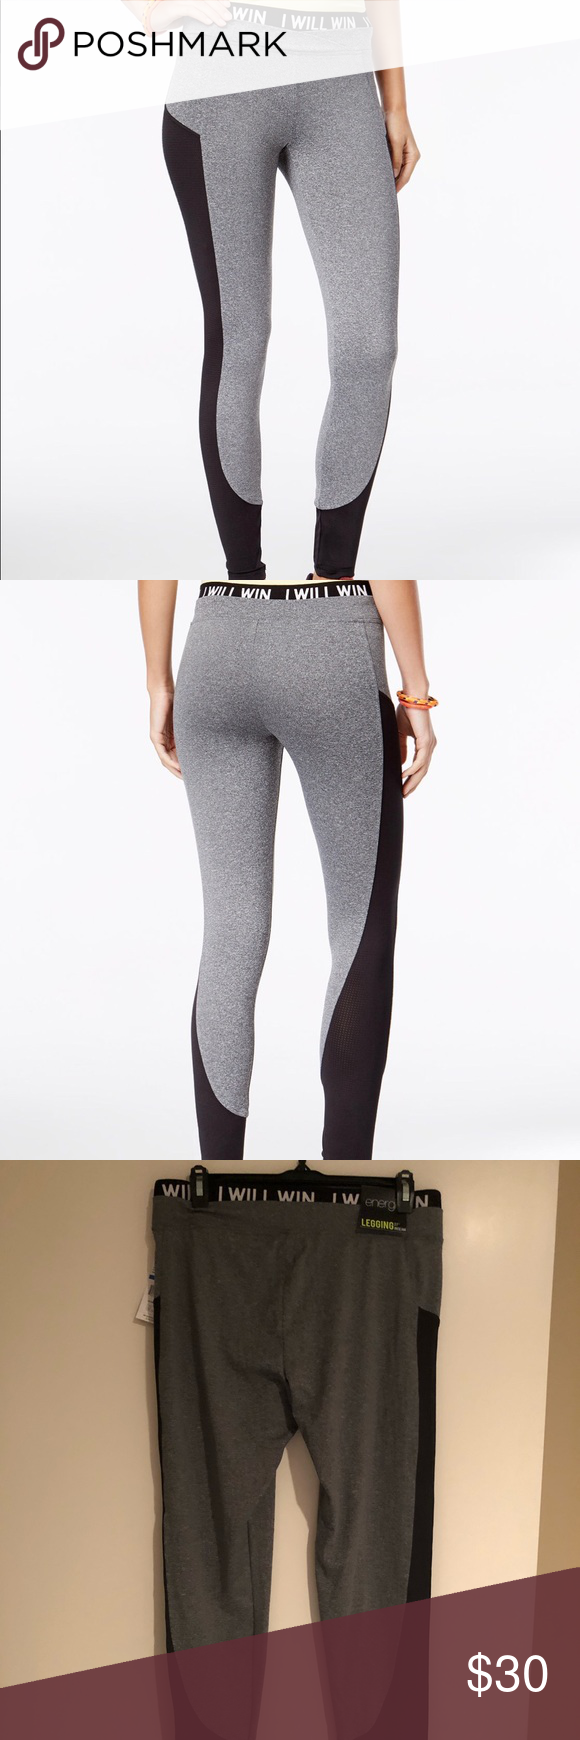 Energie Lola Mesh Leggings Grey/BlackXL Mesh leggings